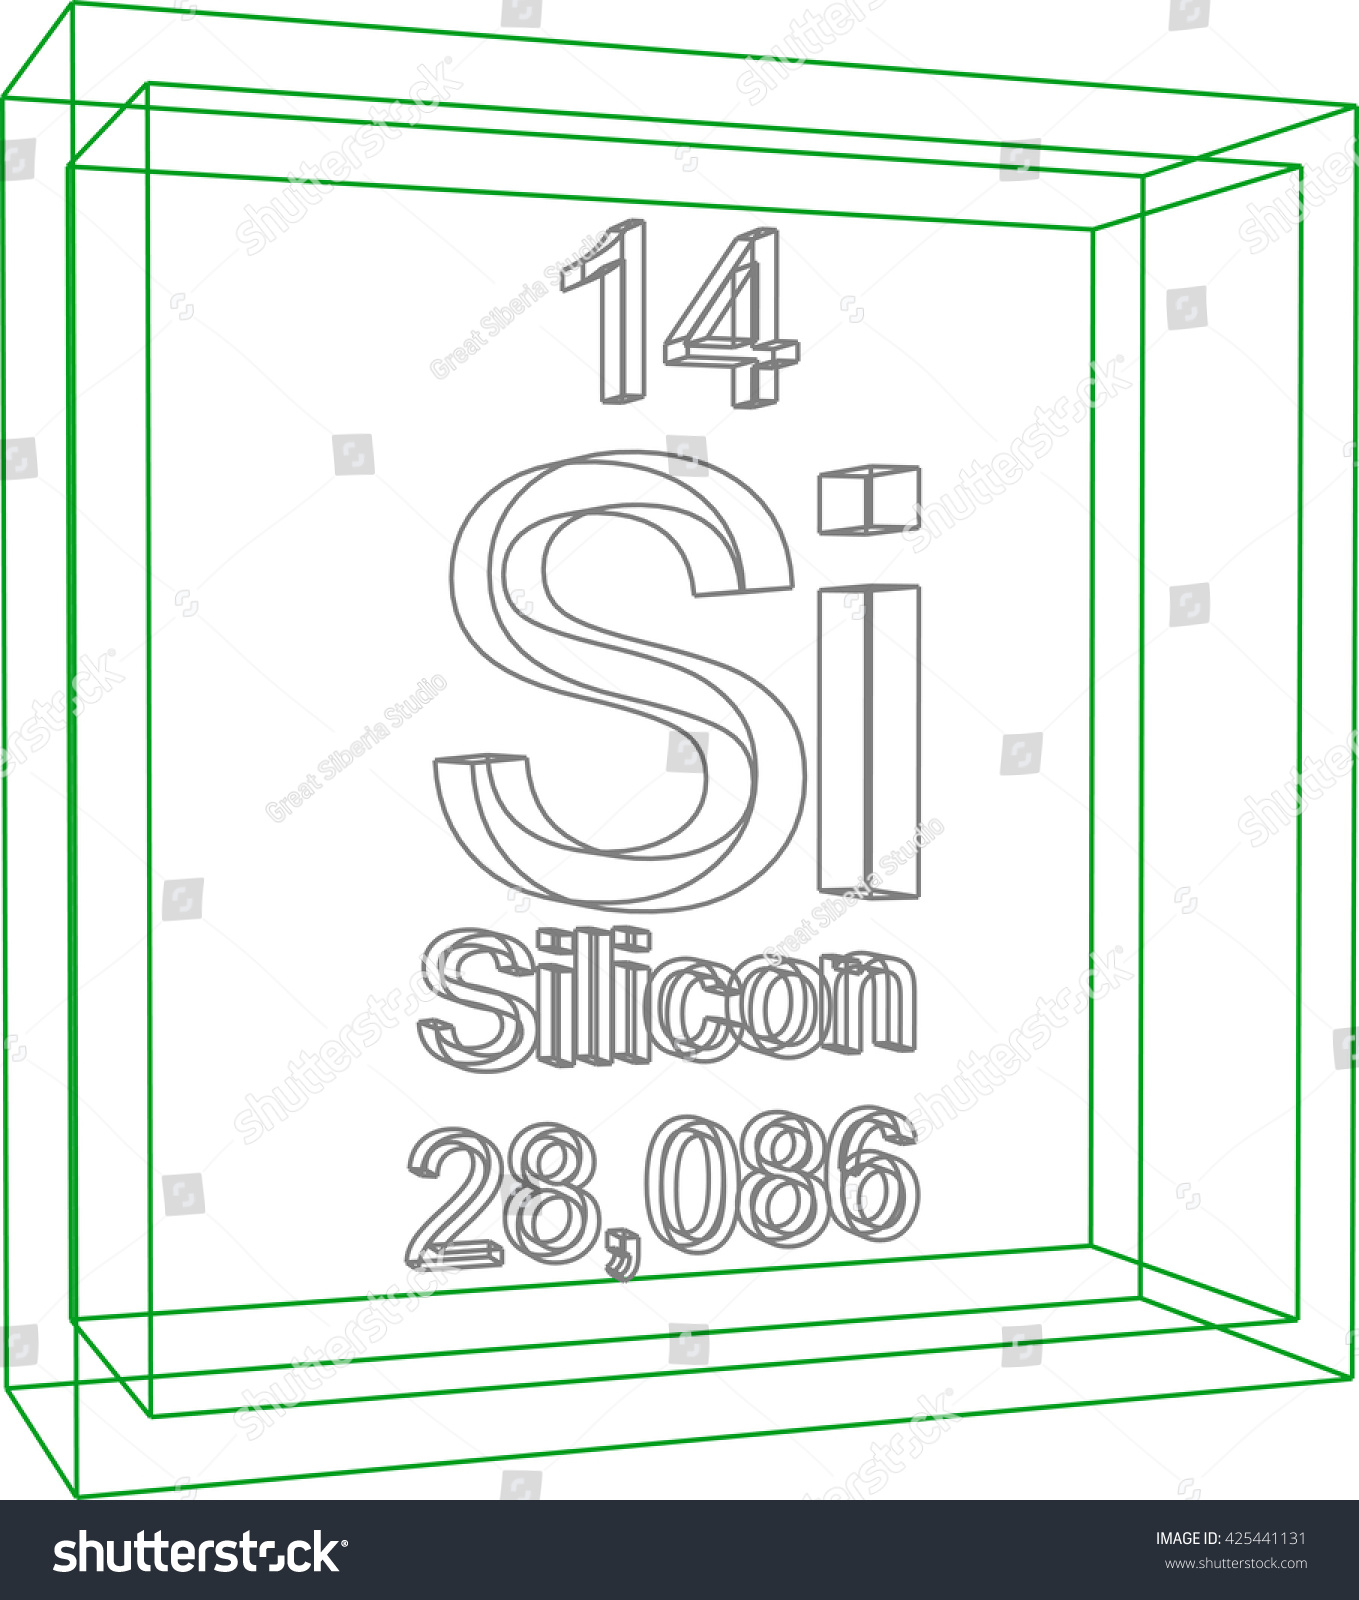 Periodic table elements silicon stock vector 425441131 shutterstock periodic table of elements silicon biocorpaavc Gallery